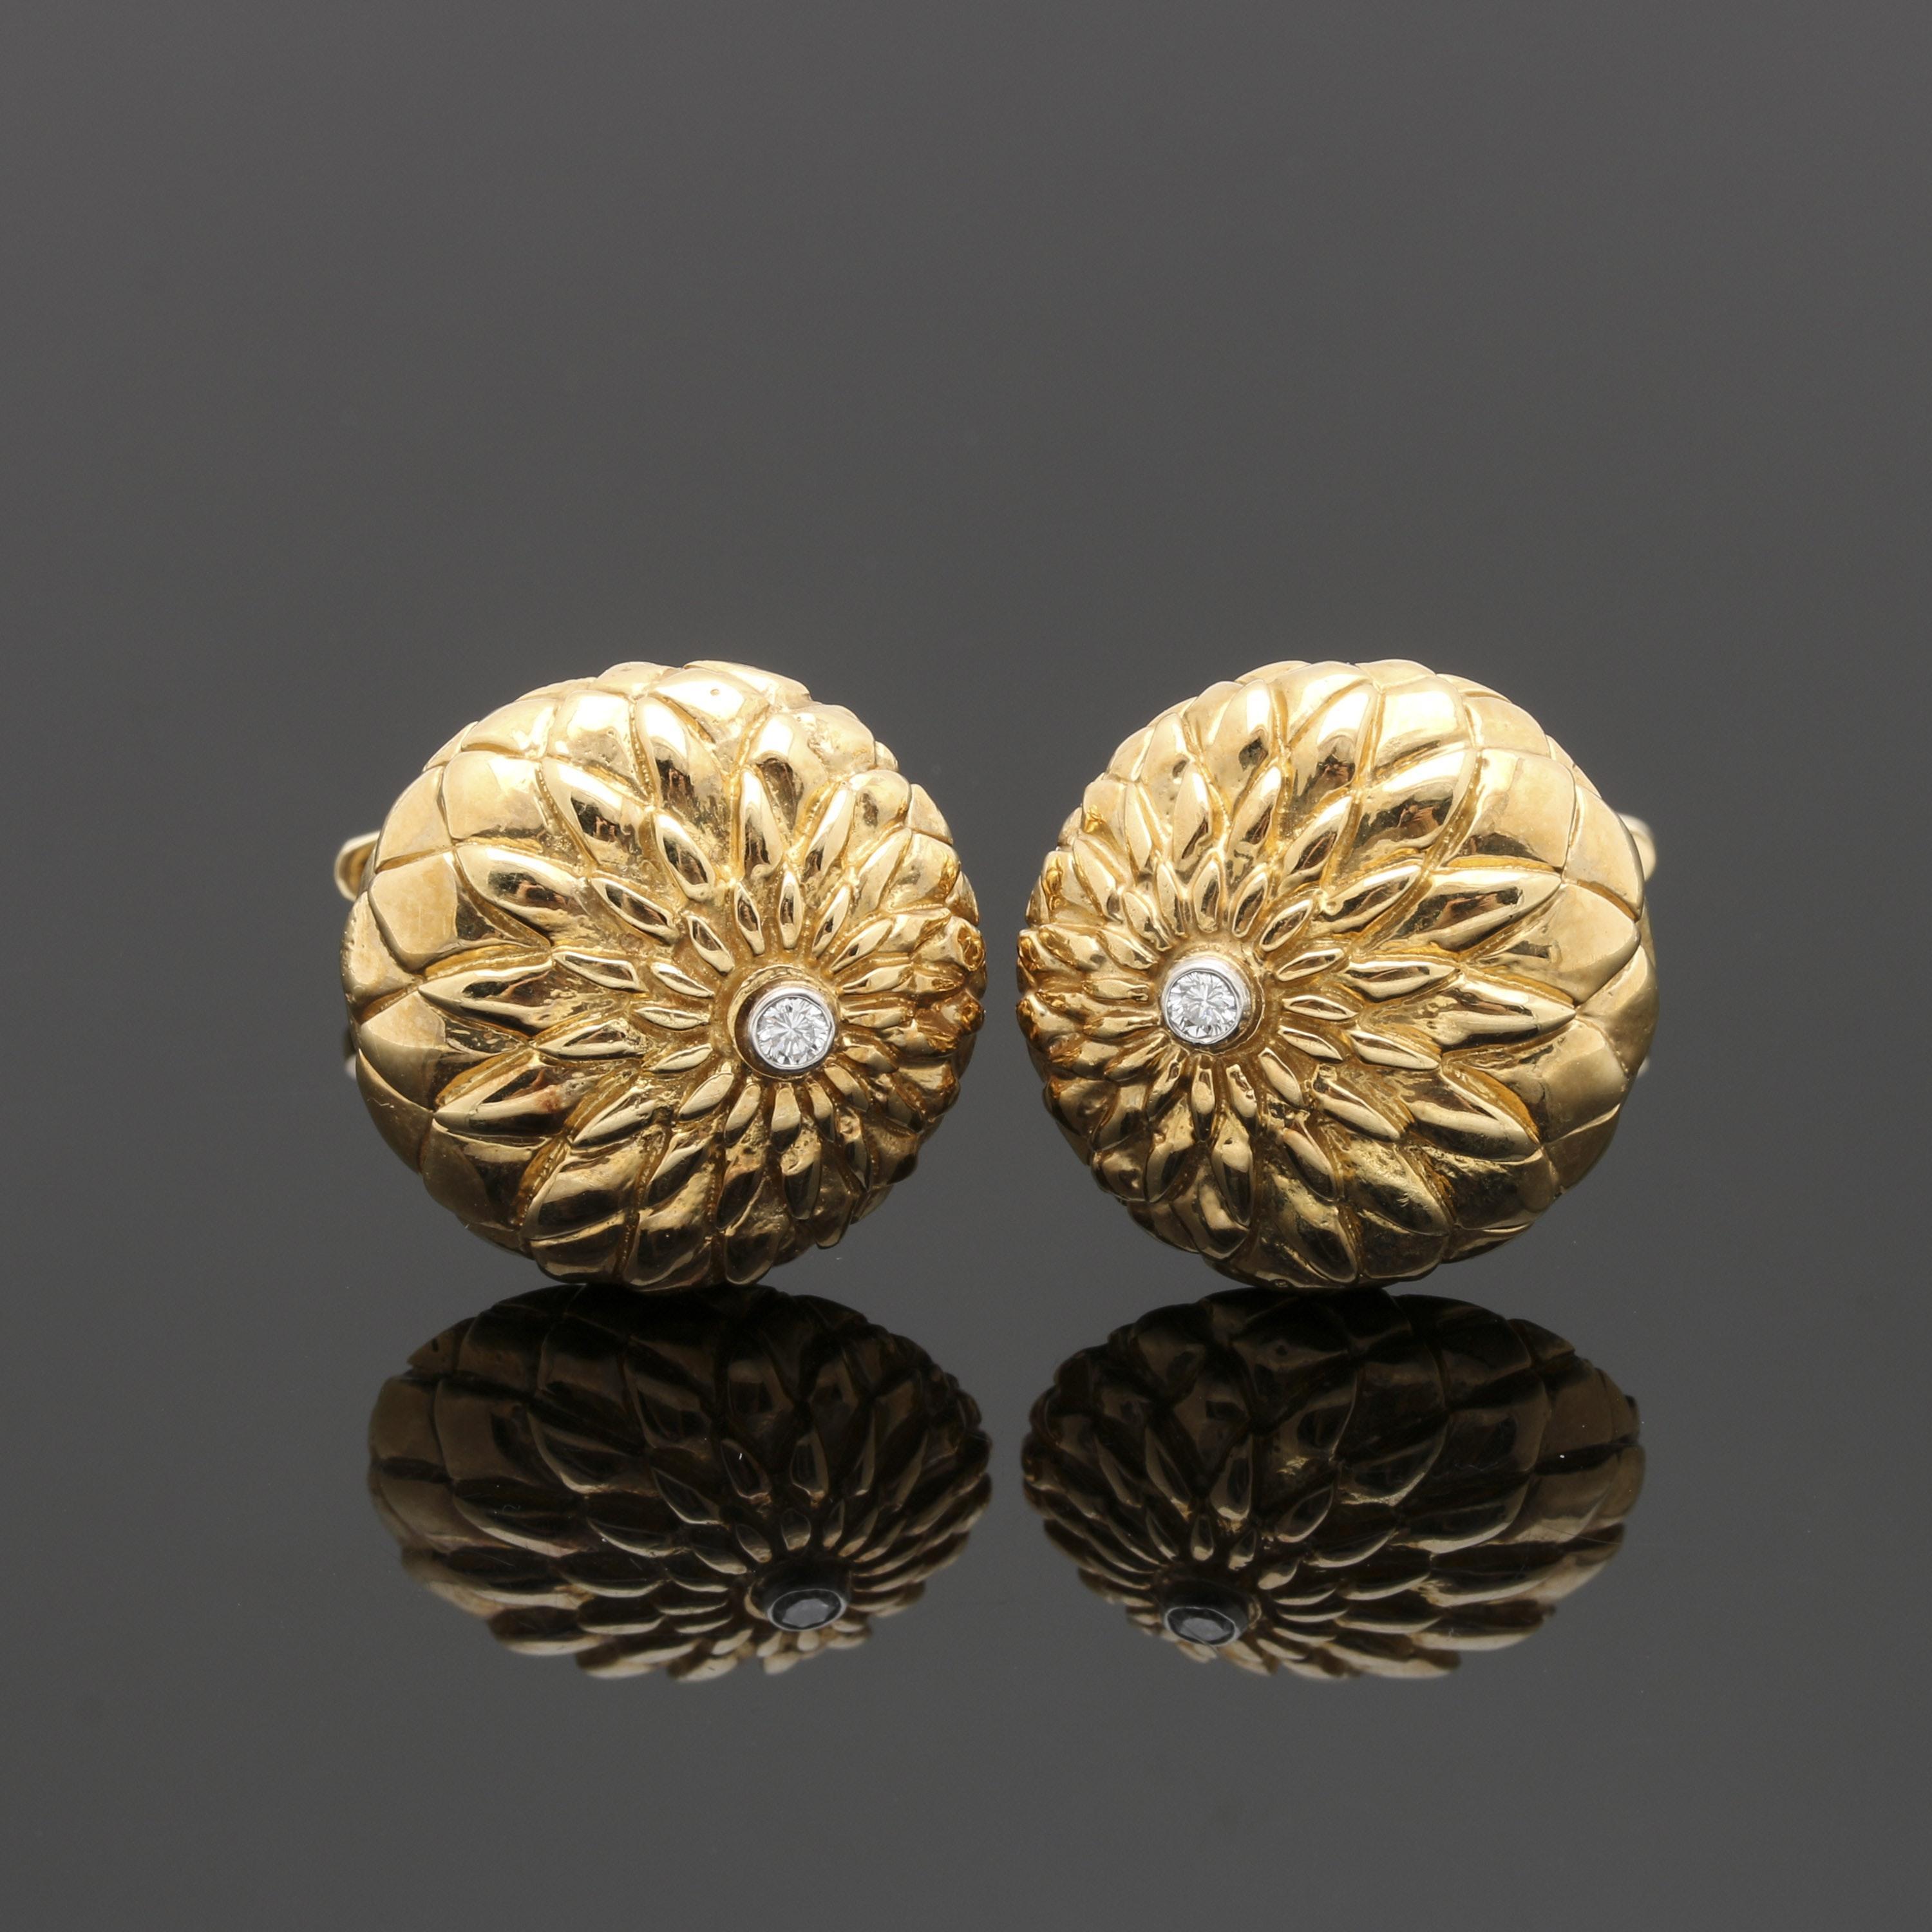 18K Yellow Gold Diamond Chrysanthemum Cufflinks